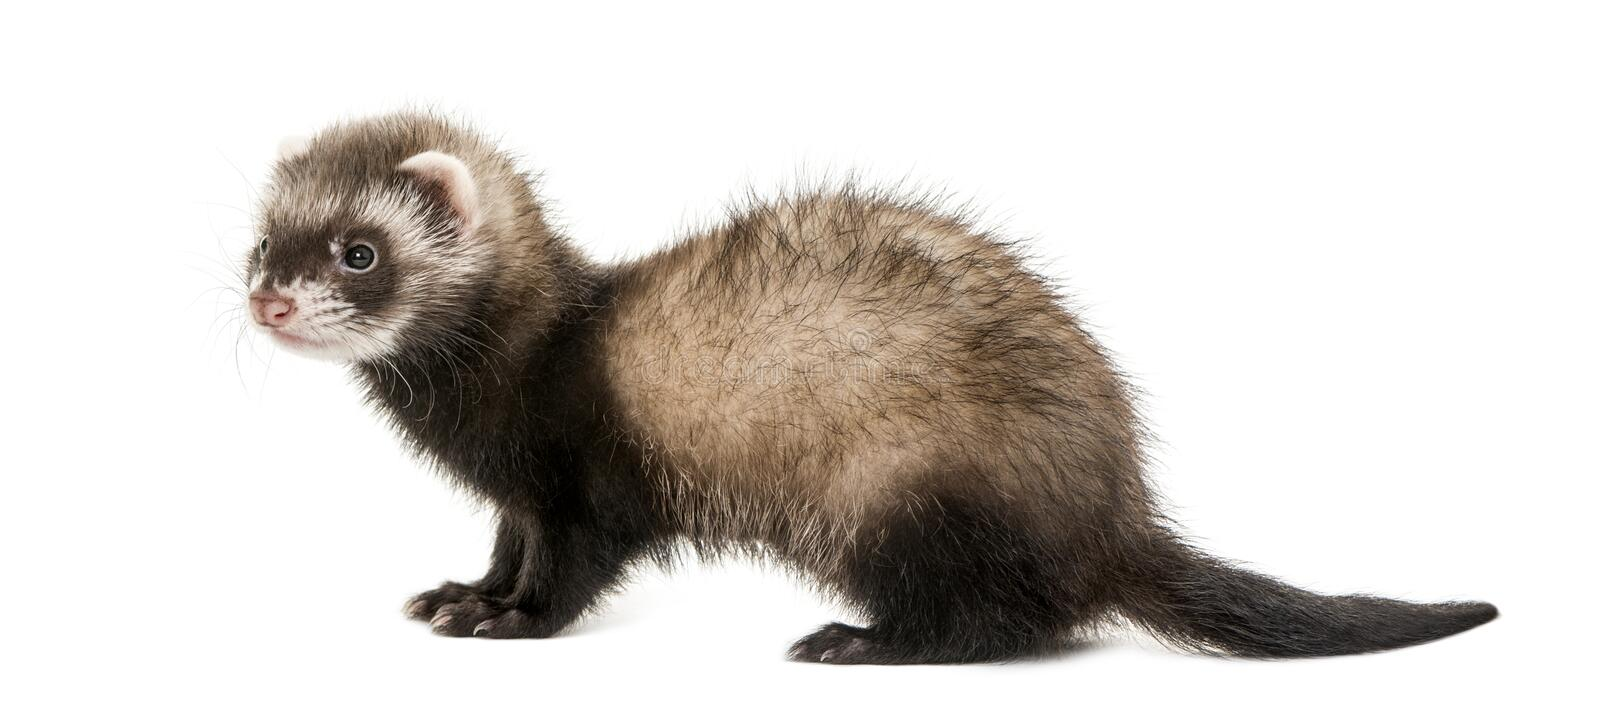 Ferret standing royalty free stock image